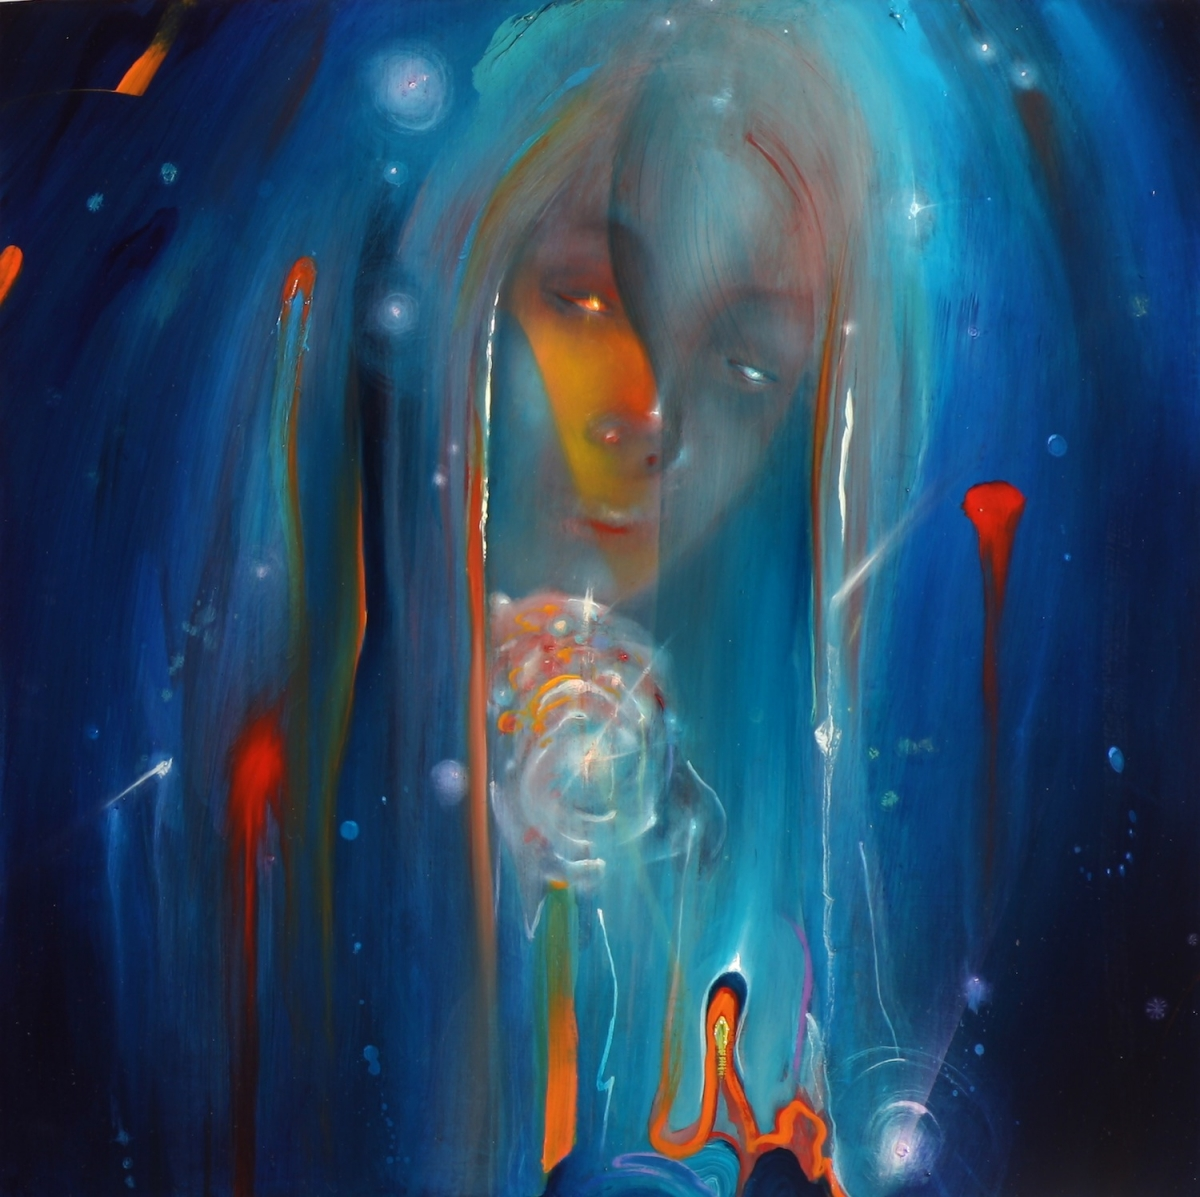 Artwork by Michael Page